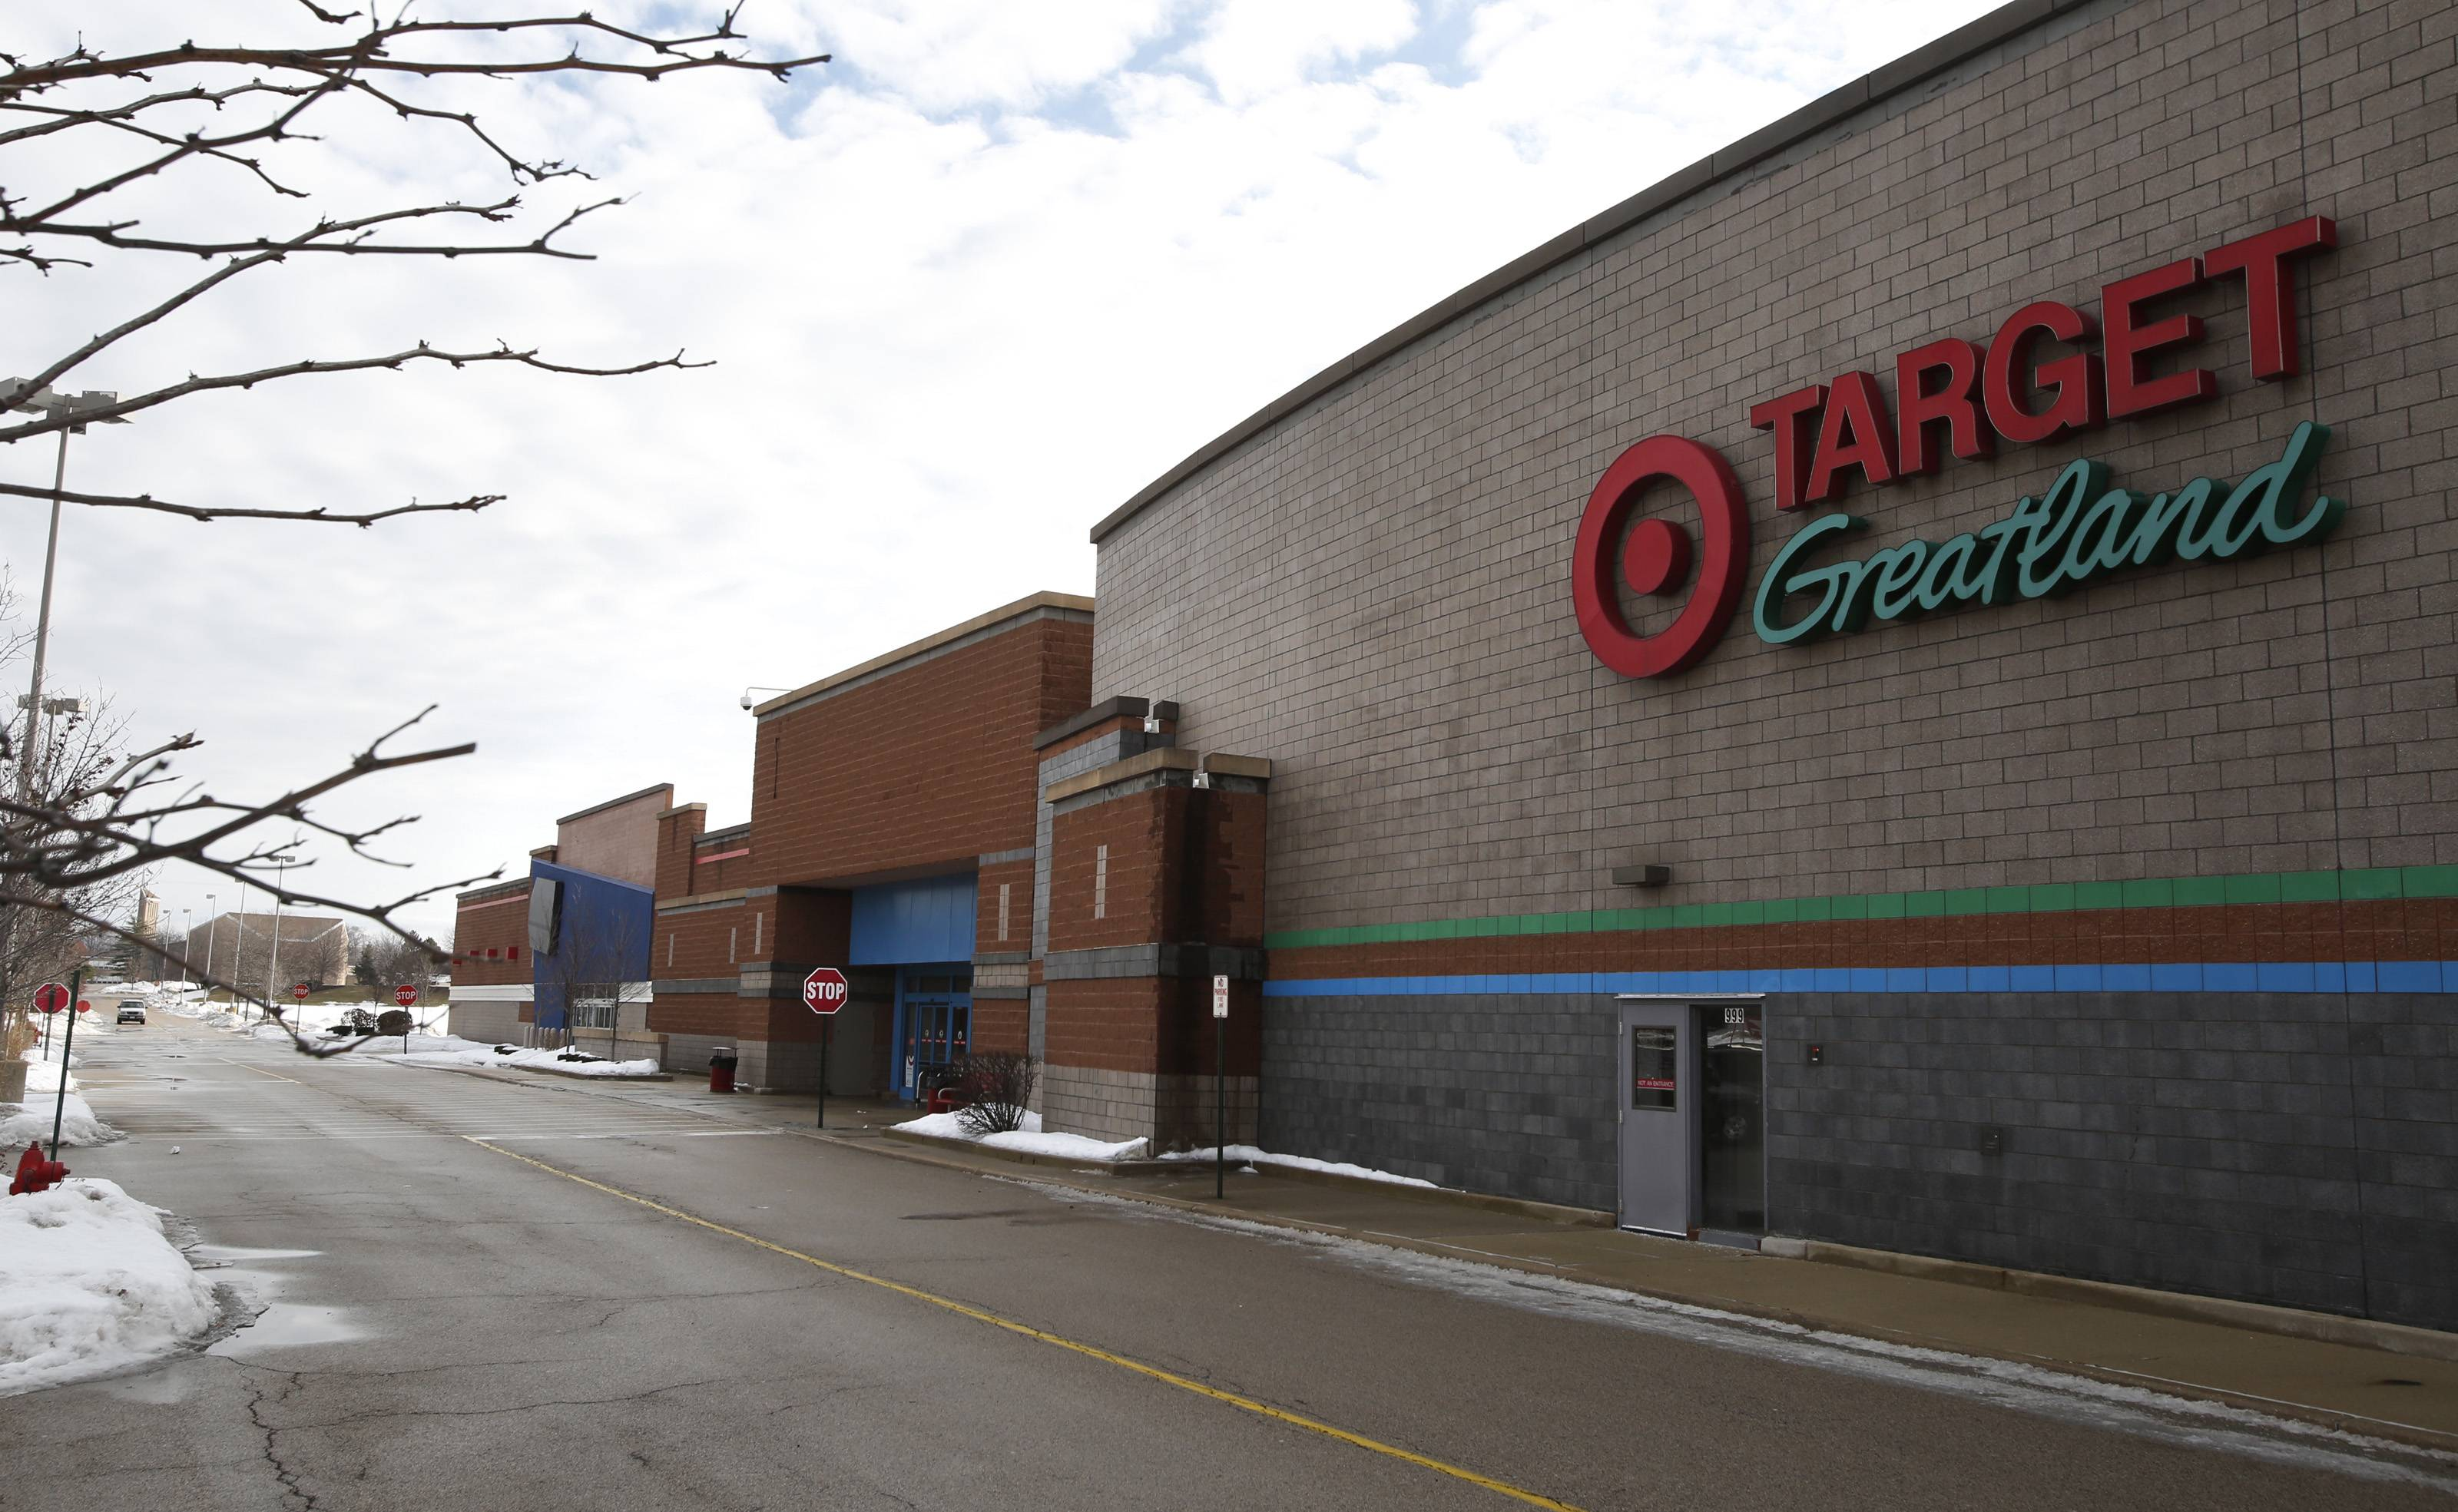 The West Dundee Target closes Saturday, but the village will continue collecting its sales tax for the next three months. That's due to a three-month lag between when a business submits sales tax to the state and when the state sends it back to the municipality.